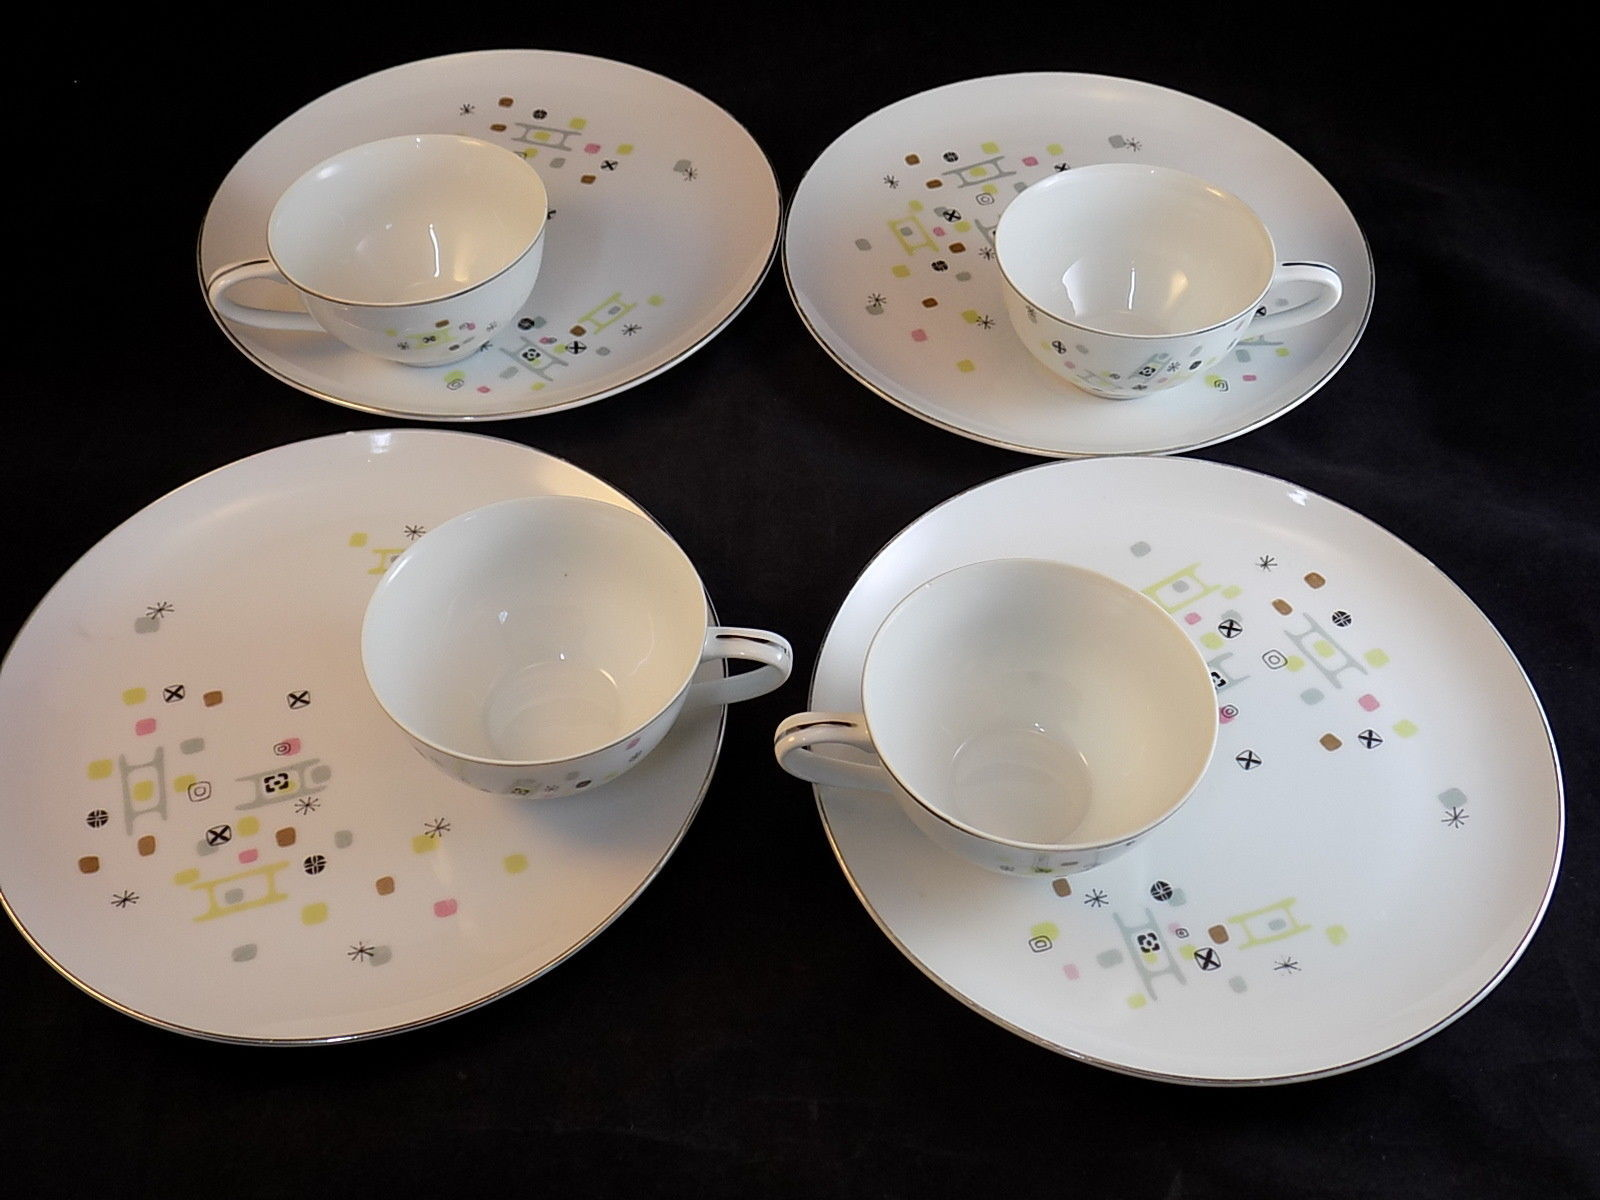 Laurel China Japan  FROLIC  4 SNACK PLATES and CUPS 1950s Geometric Atomic Age & Laurel China Japan